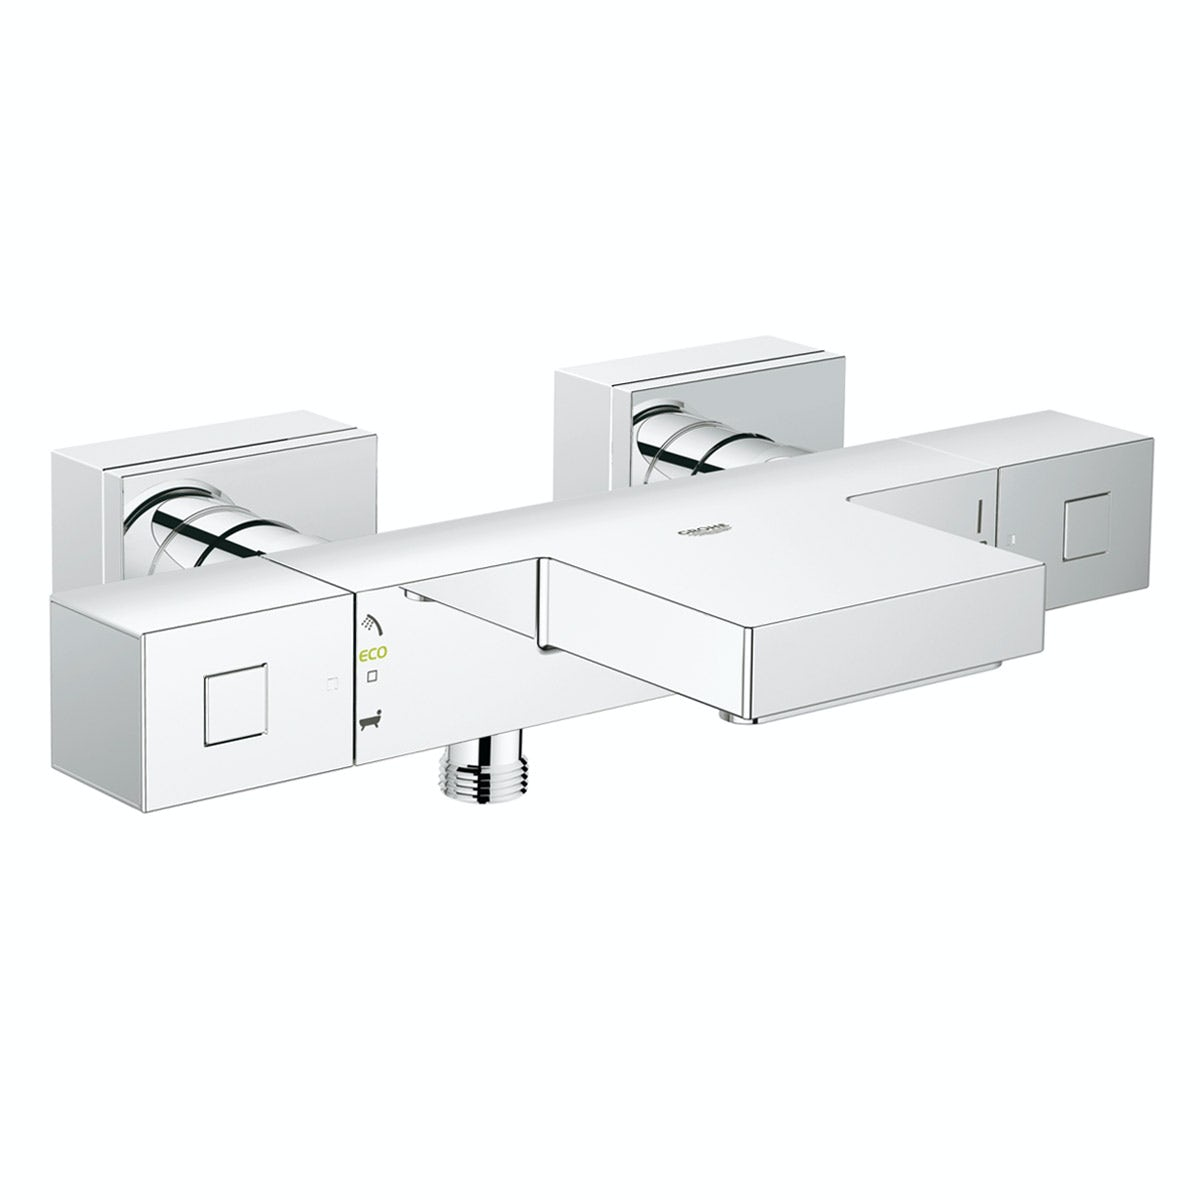 Grohe Grohtherm Cube thermostatic bath shower mixer tap